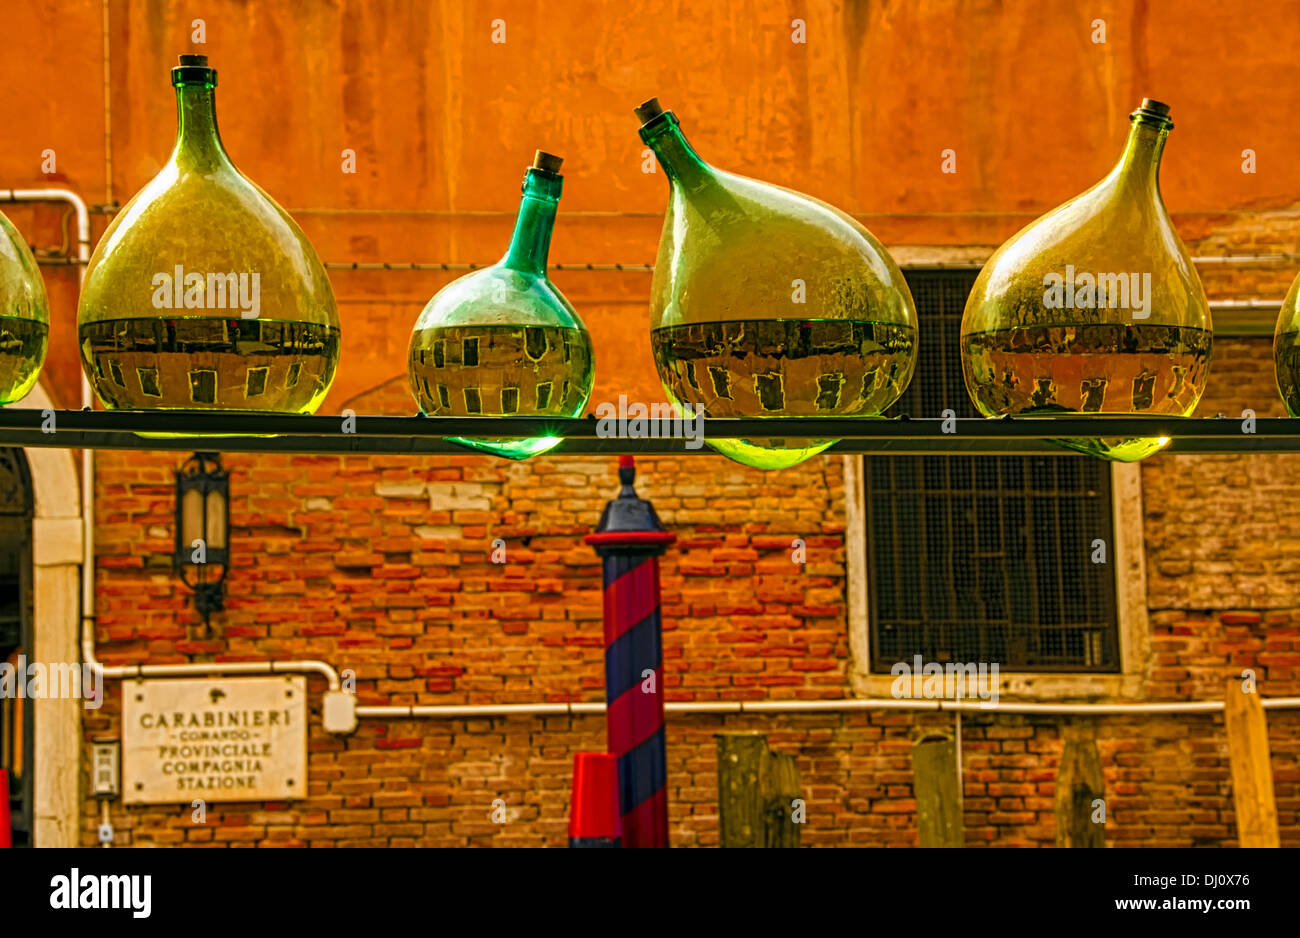 Arrangement of old bottles made by the New Zealand artist Bill Culbert  at the Church of Santa Maria della Pieta, Venice, Italy. - Stock Image